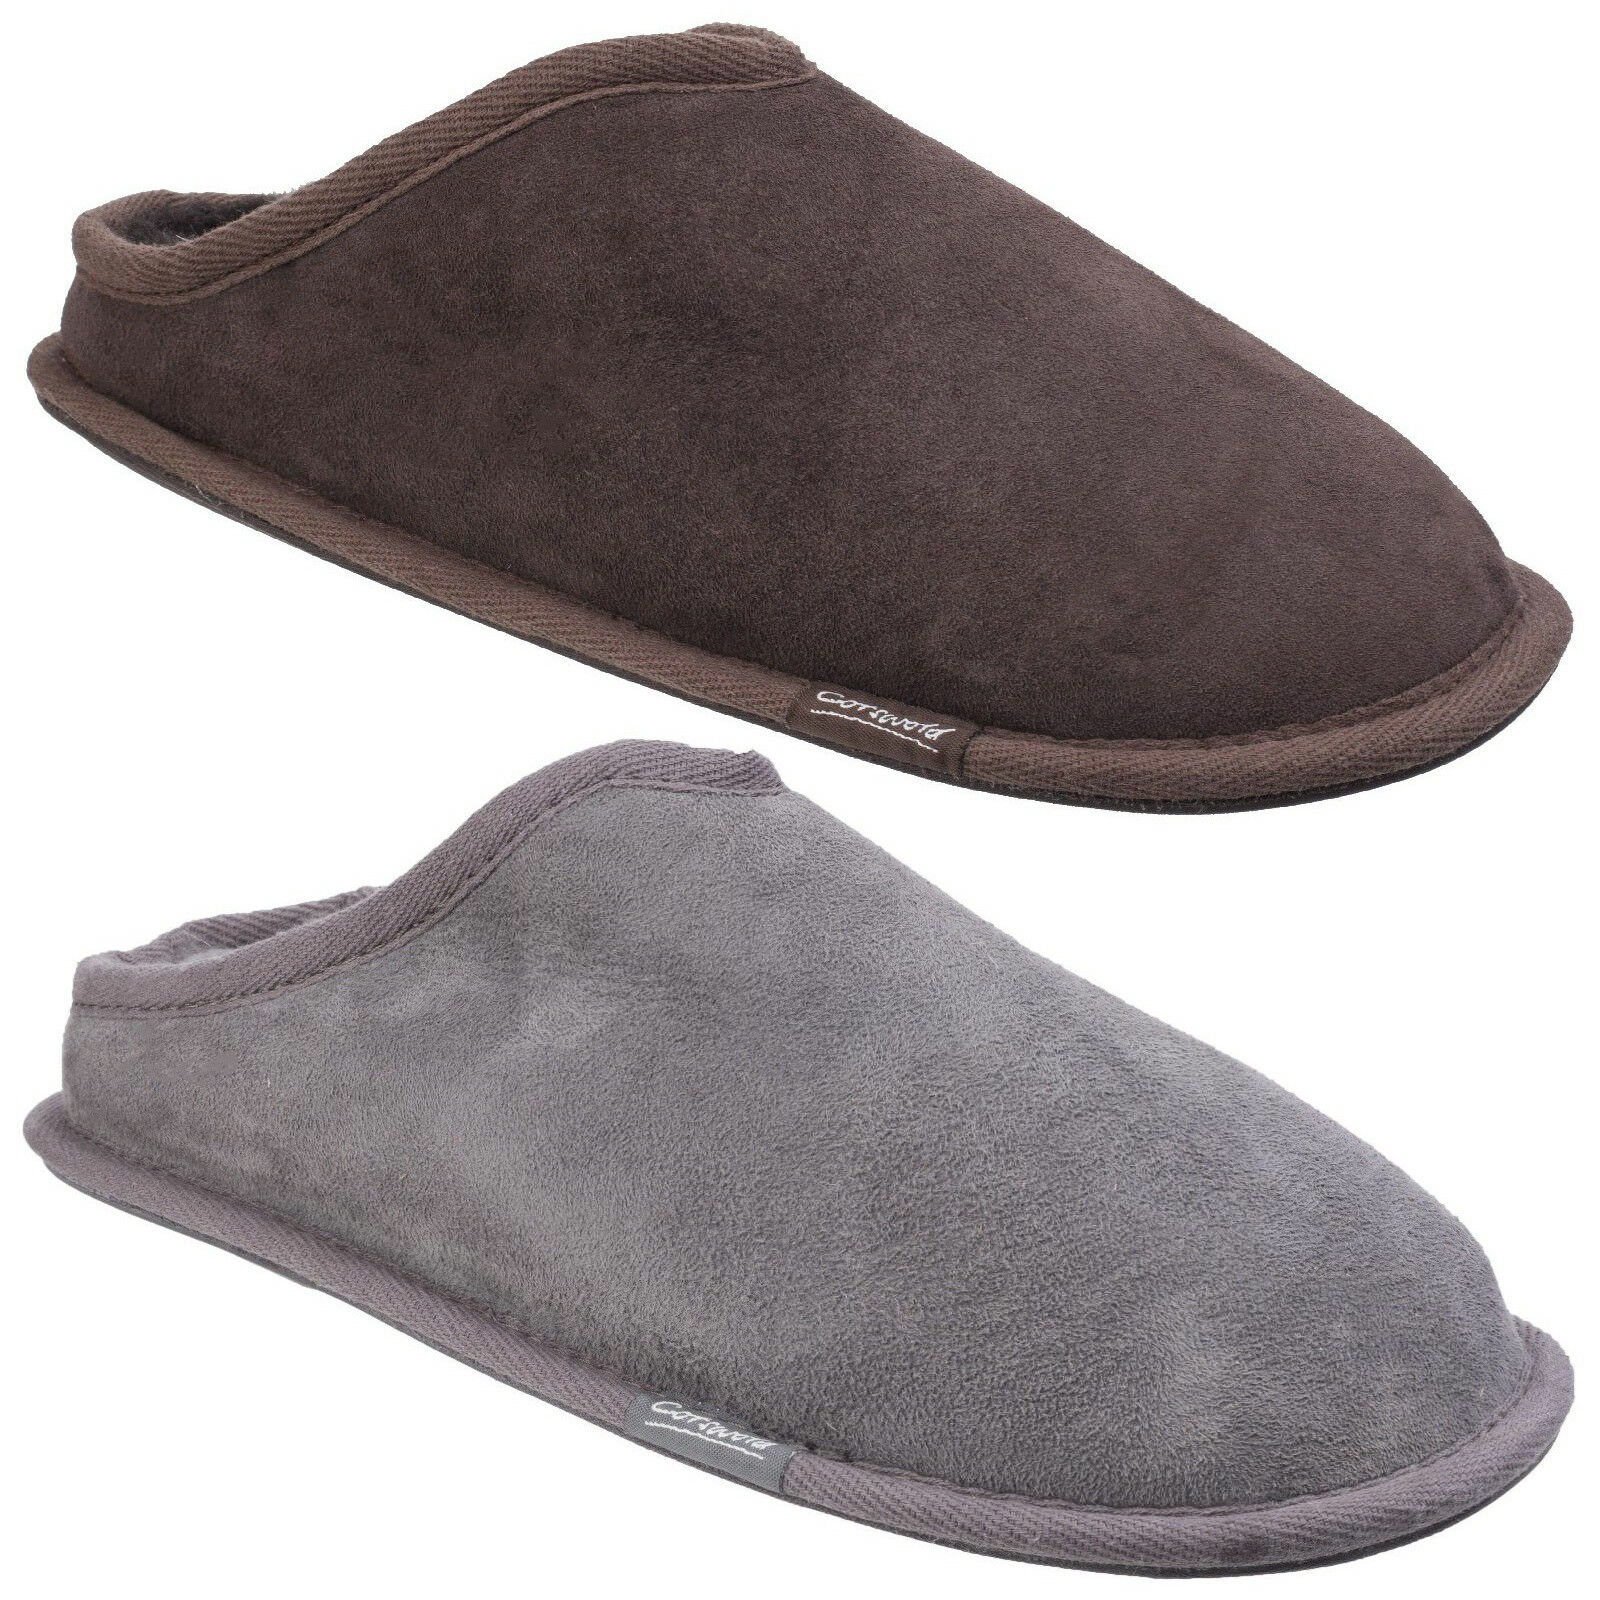 Cotswold Hidcote Sheepskin Mule Mens Leather Slip On Comfort Slippers